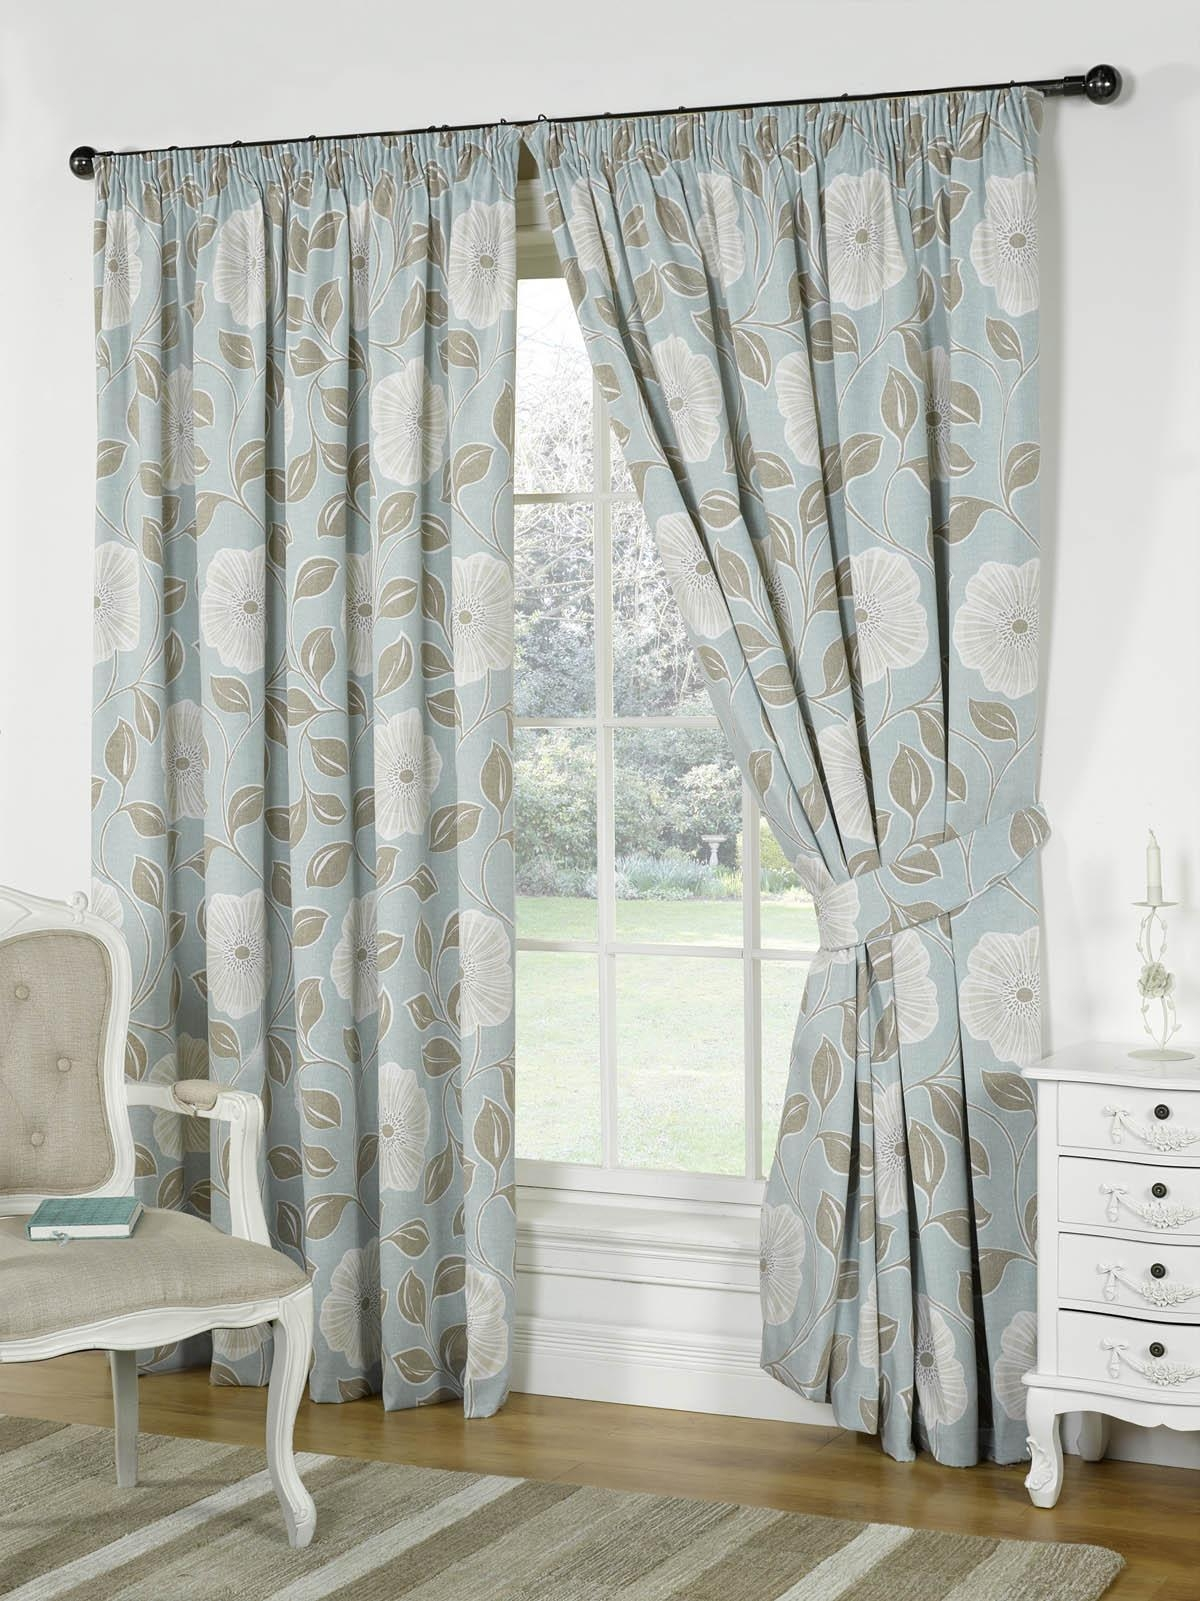 Duck Egg Blackout Curtains Within Duck Egg Blue Blackout Curtains (View 15 of 15)